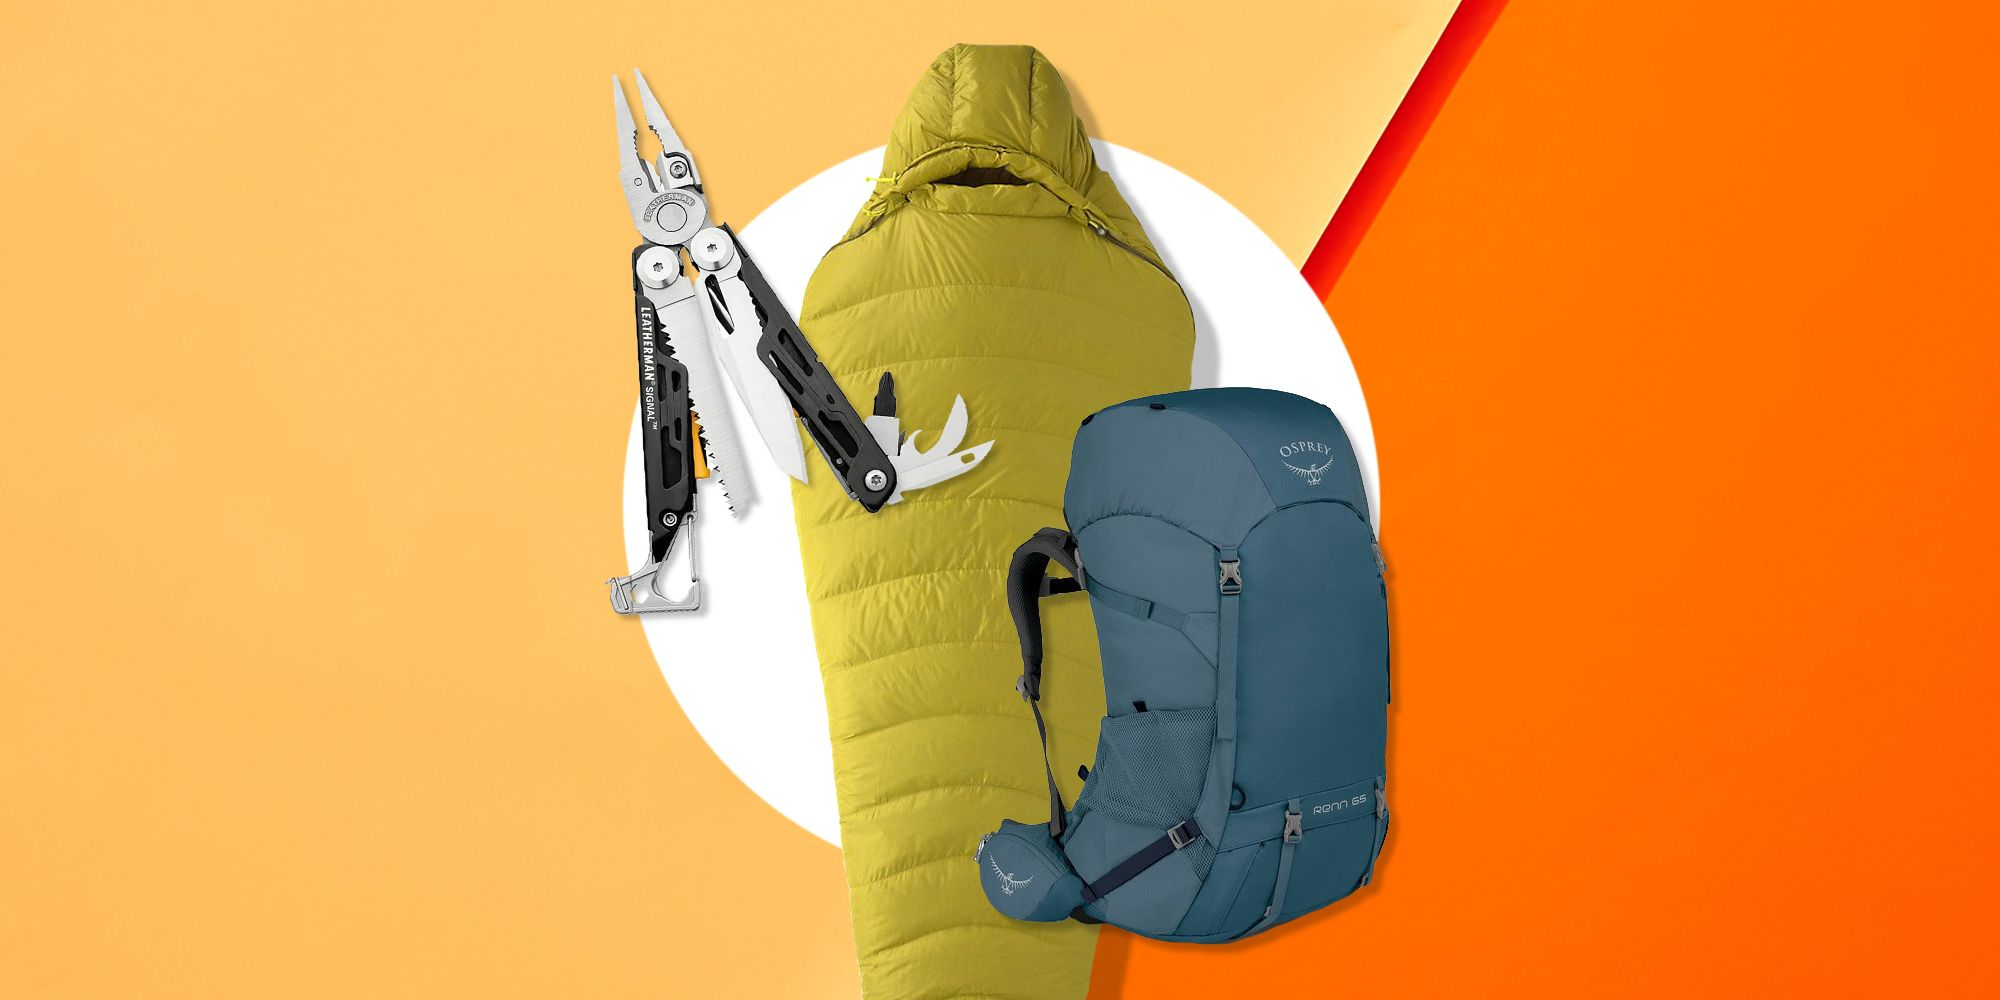 30 Camping Gear Essentials 2020 What Should I Bring For Camping